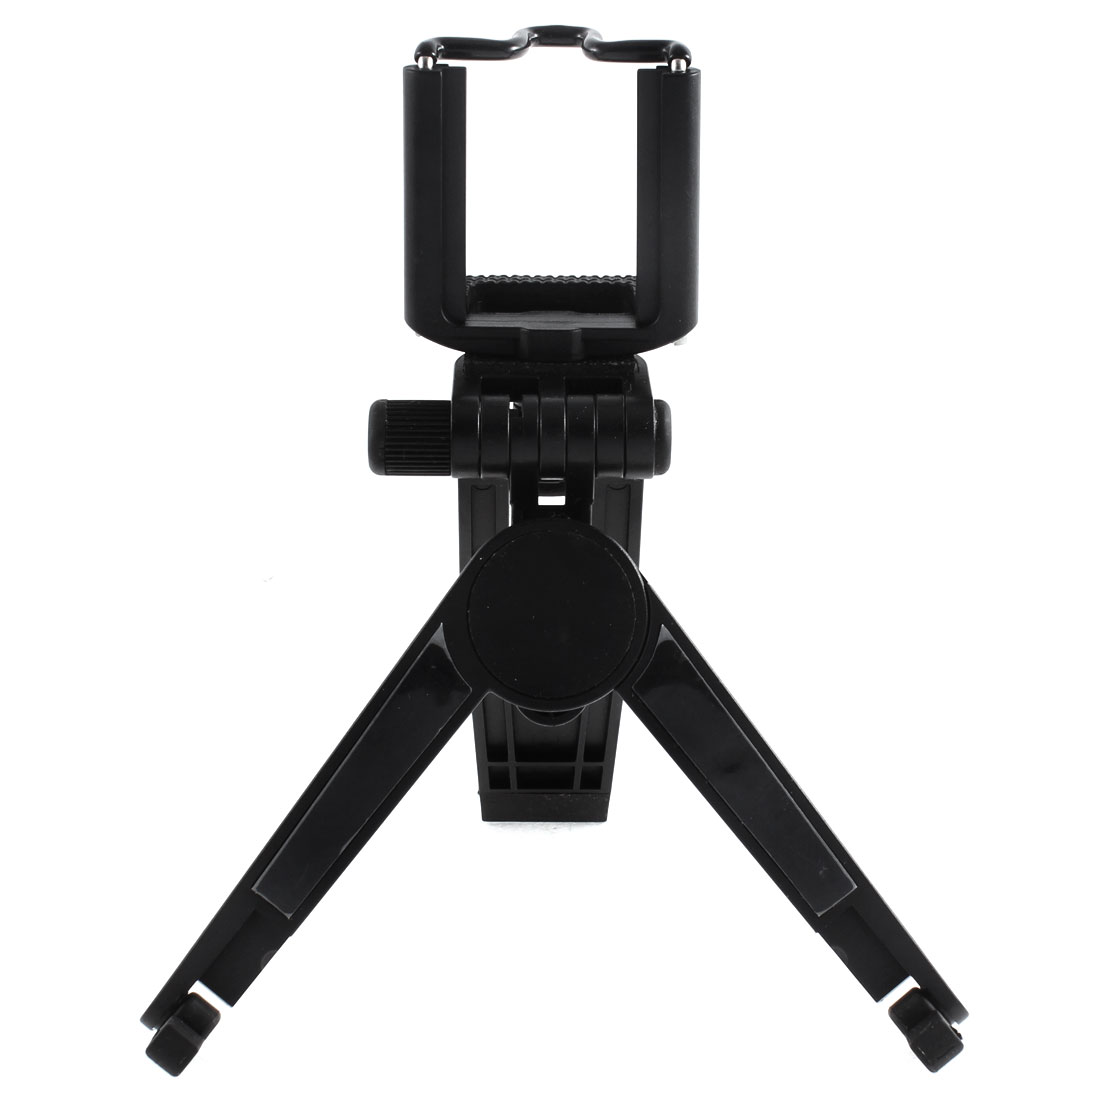 Black Portable Mini Tripod Stand Holder for Tablet PC Digital Camera Phone